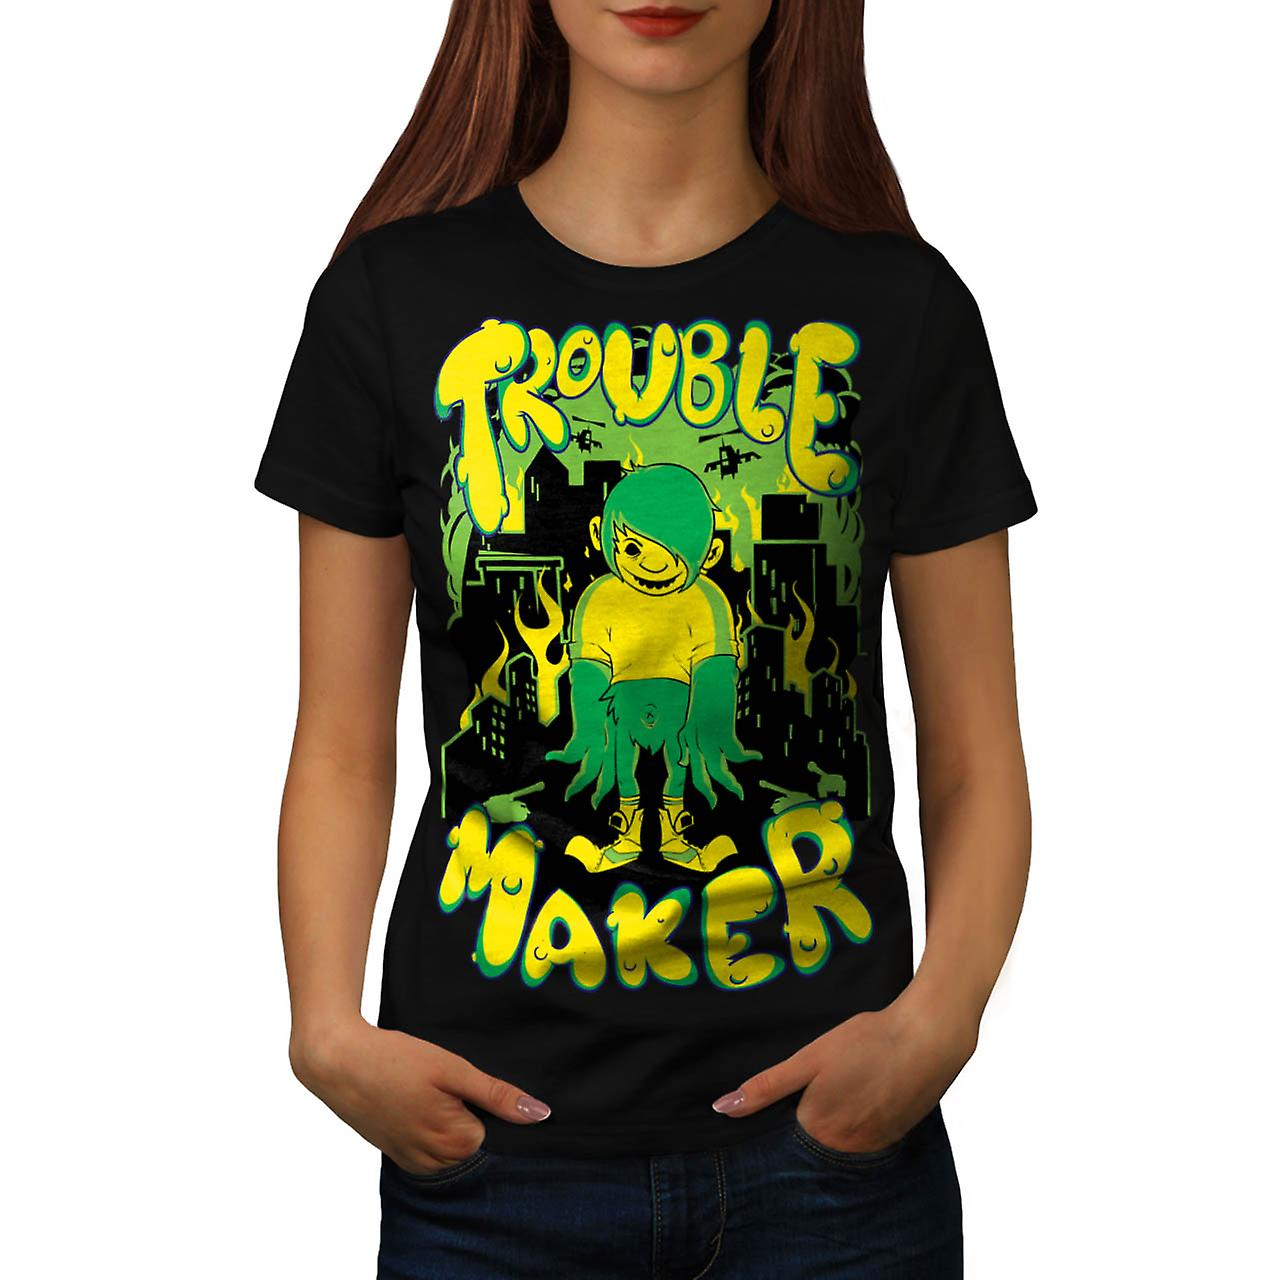 Trouble Maker Youth Chaos Problem Women Black T-shirt | Wellcoda